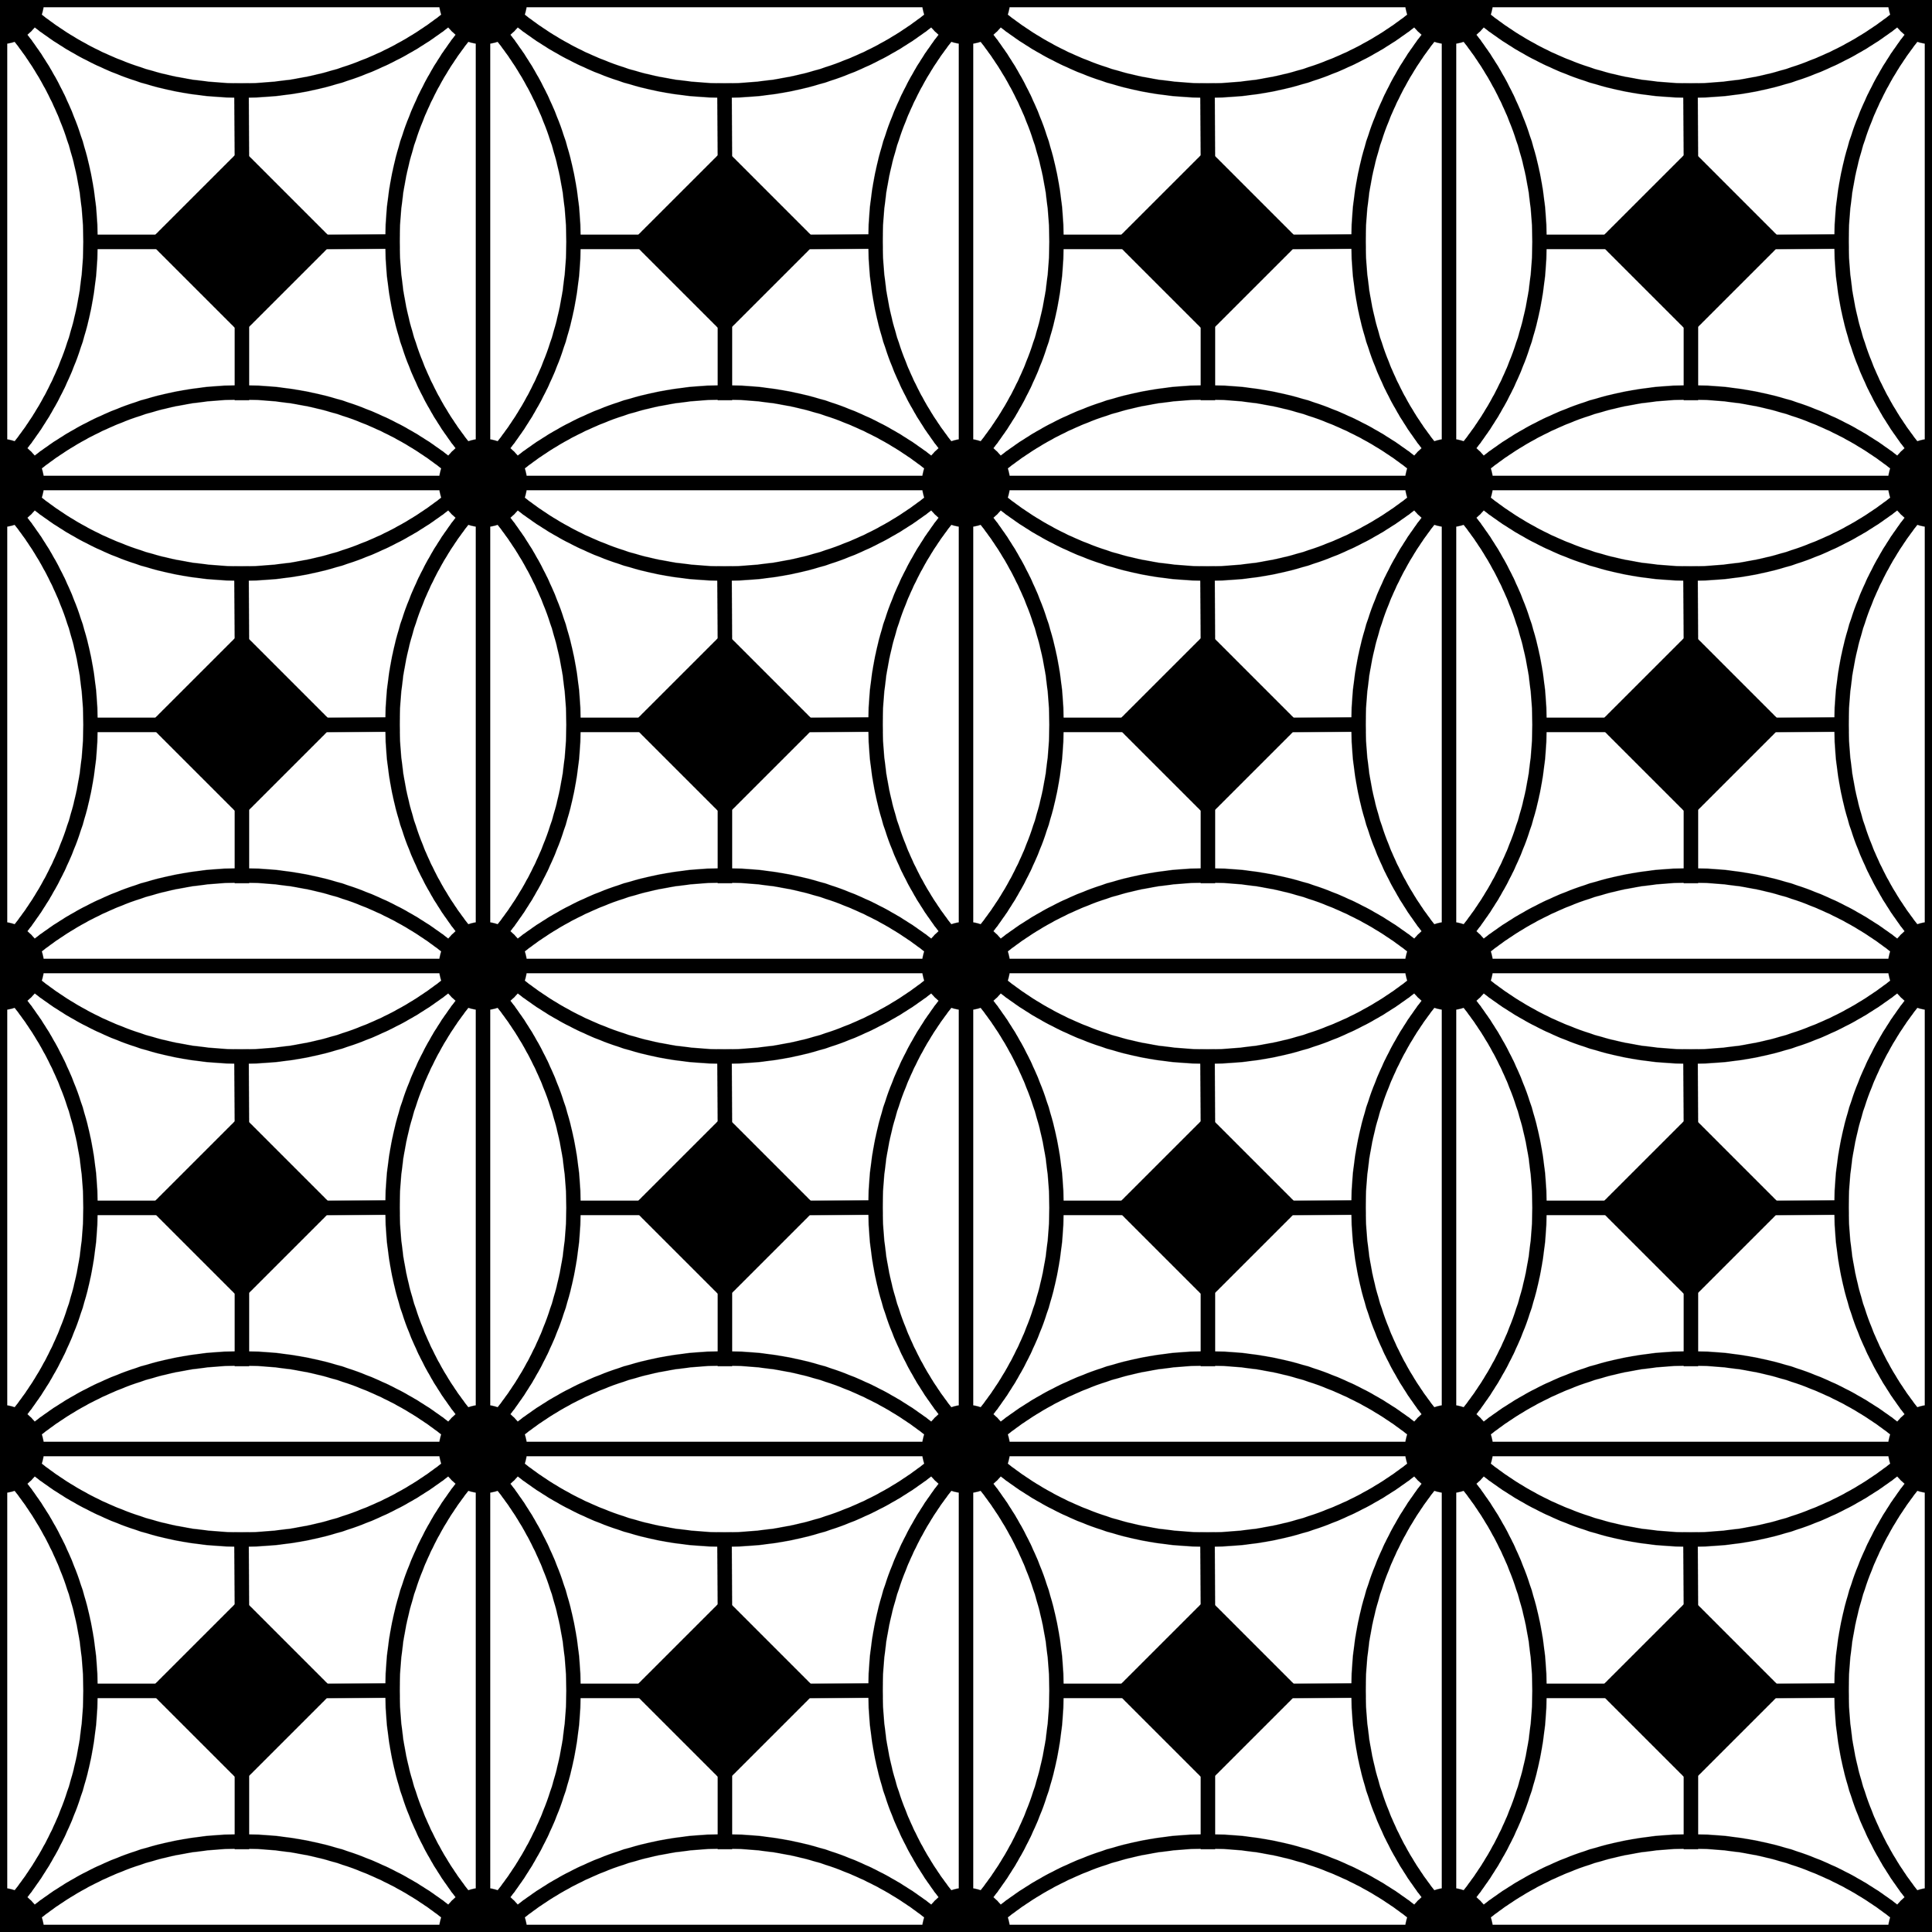 BYC_TILE_GEO_05.png